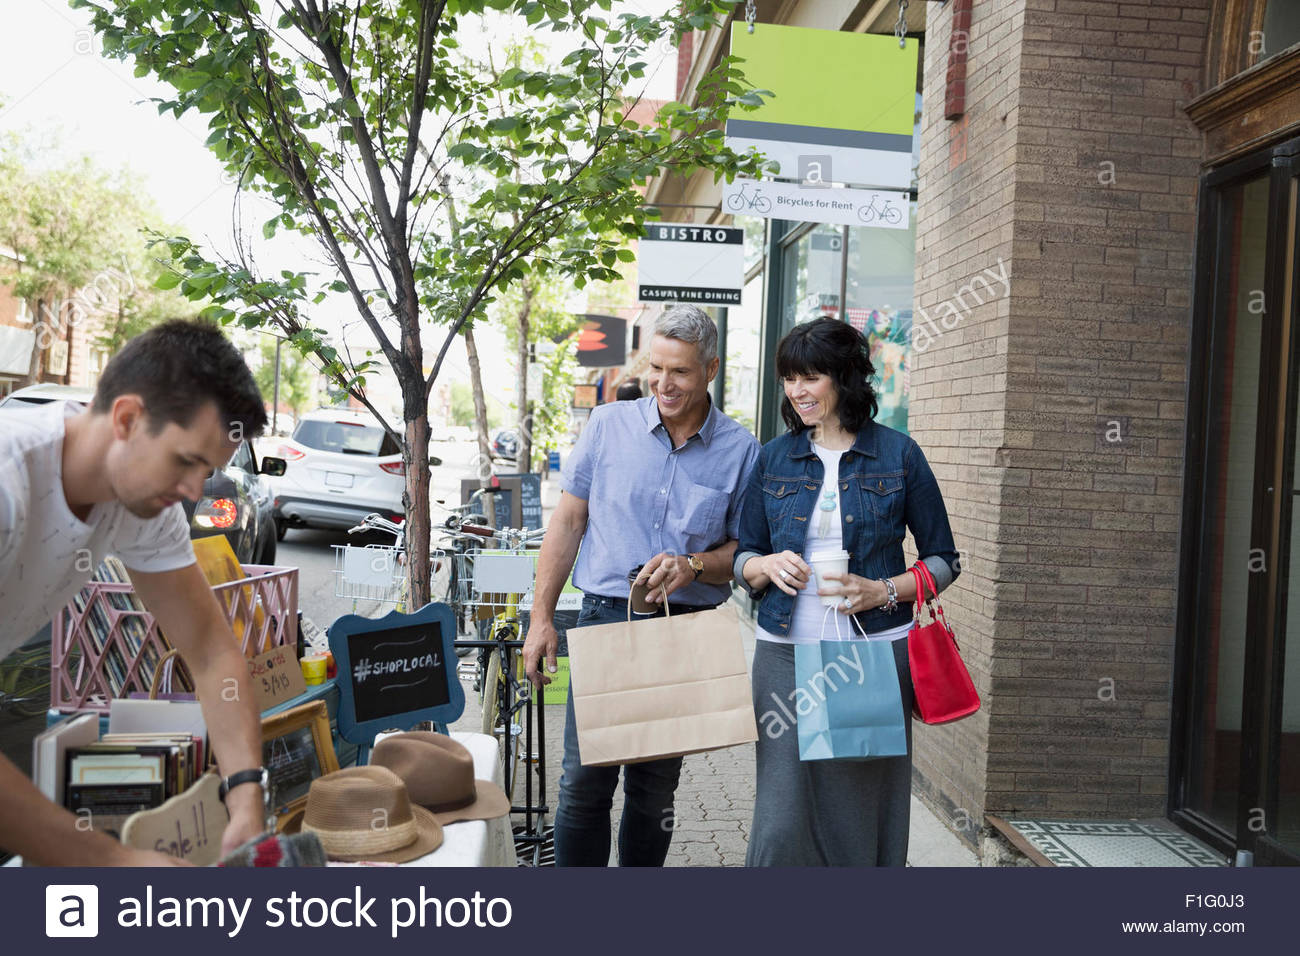 Couple with shopping bags approaching sidewalk sale - Stock Image